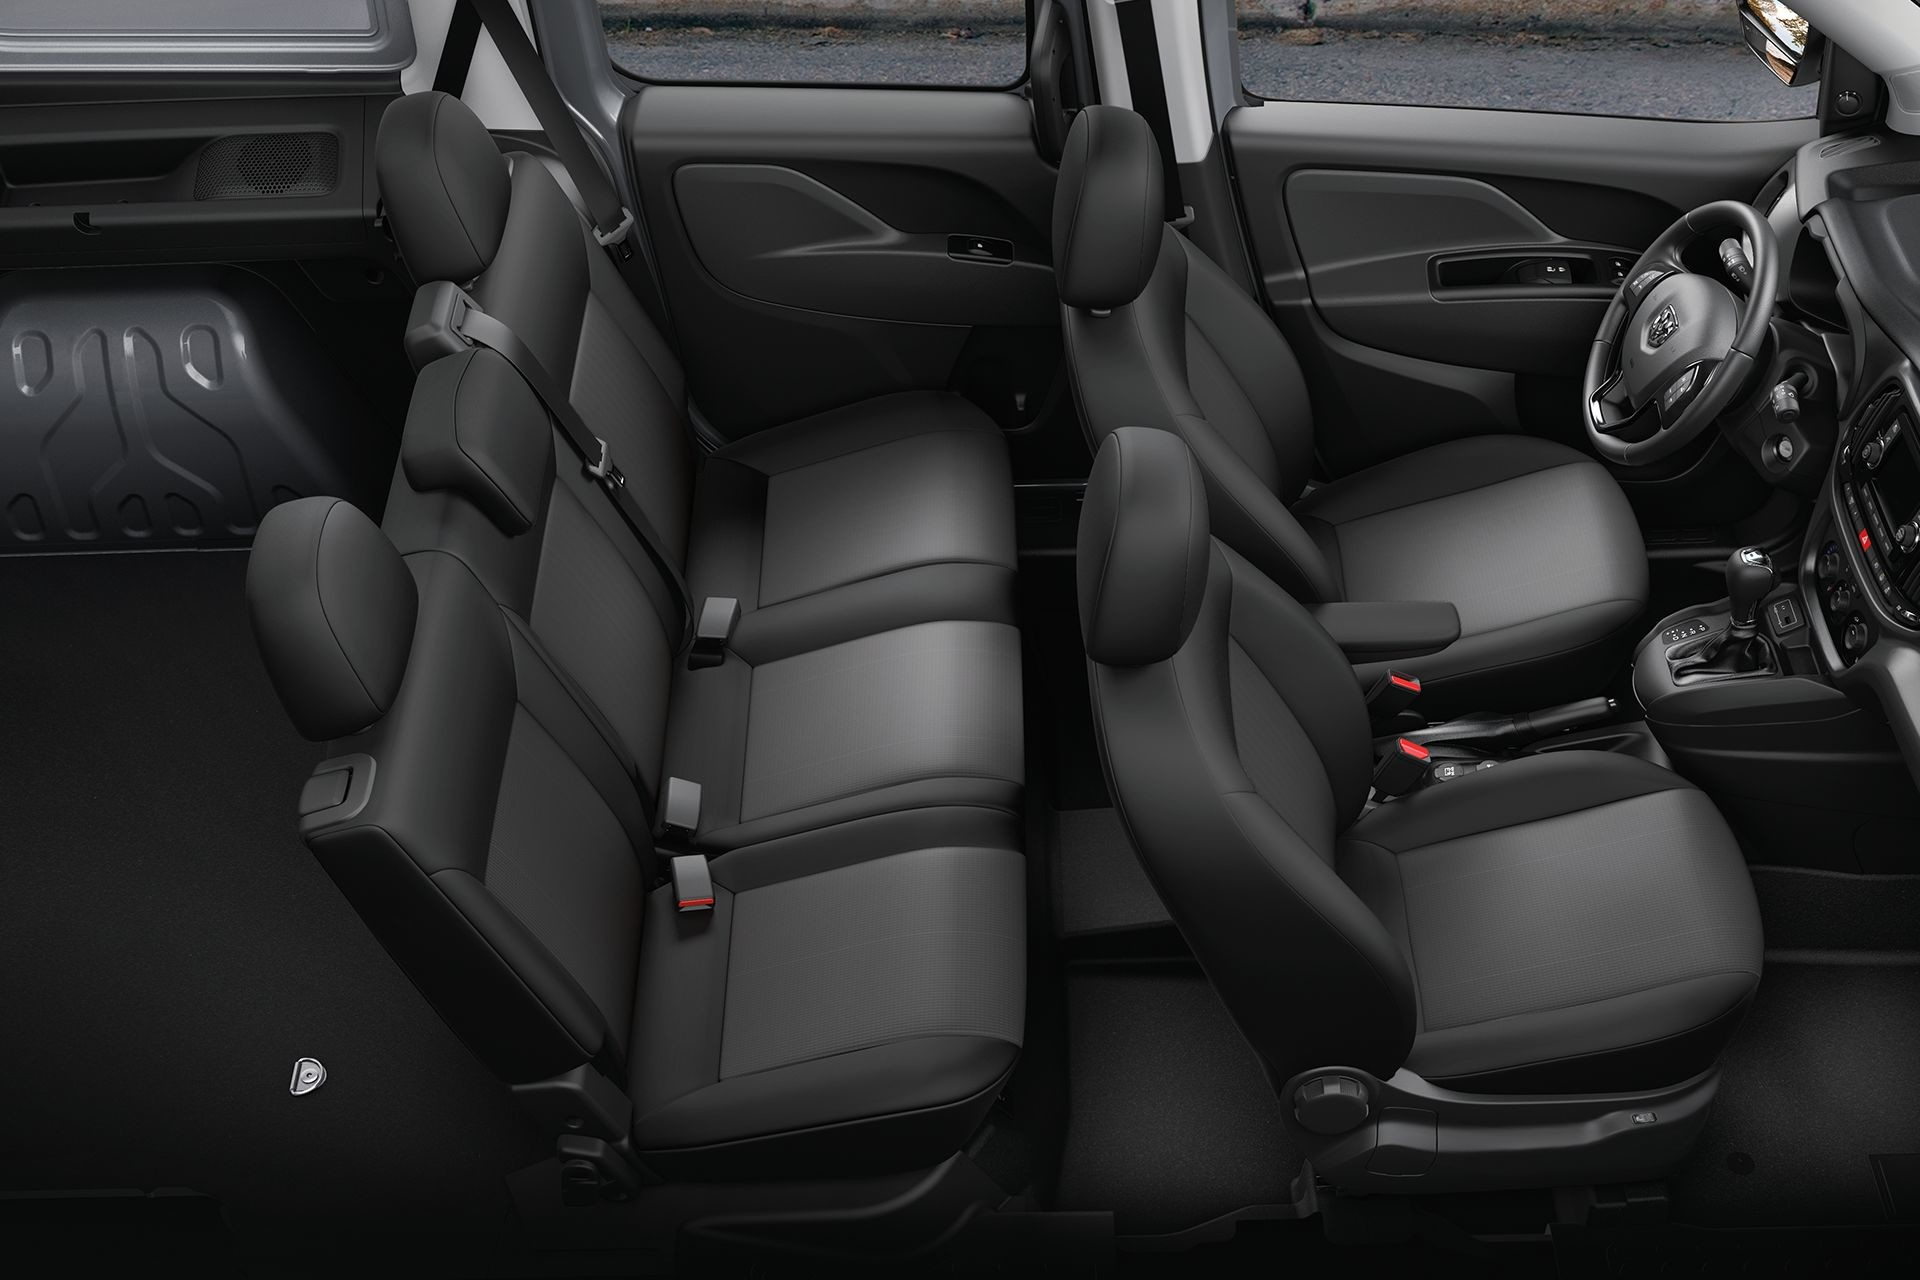 2018 RAM ProMaster City modern wagon comfort for 5, with fold and tumble rear seats